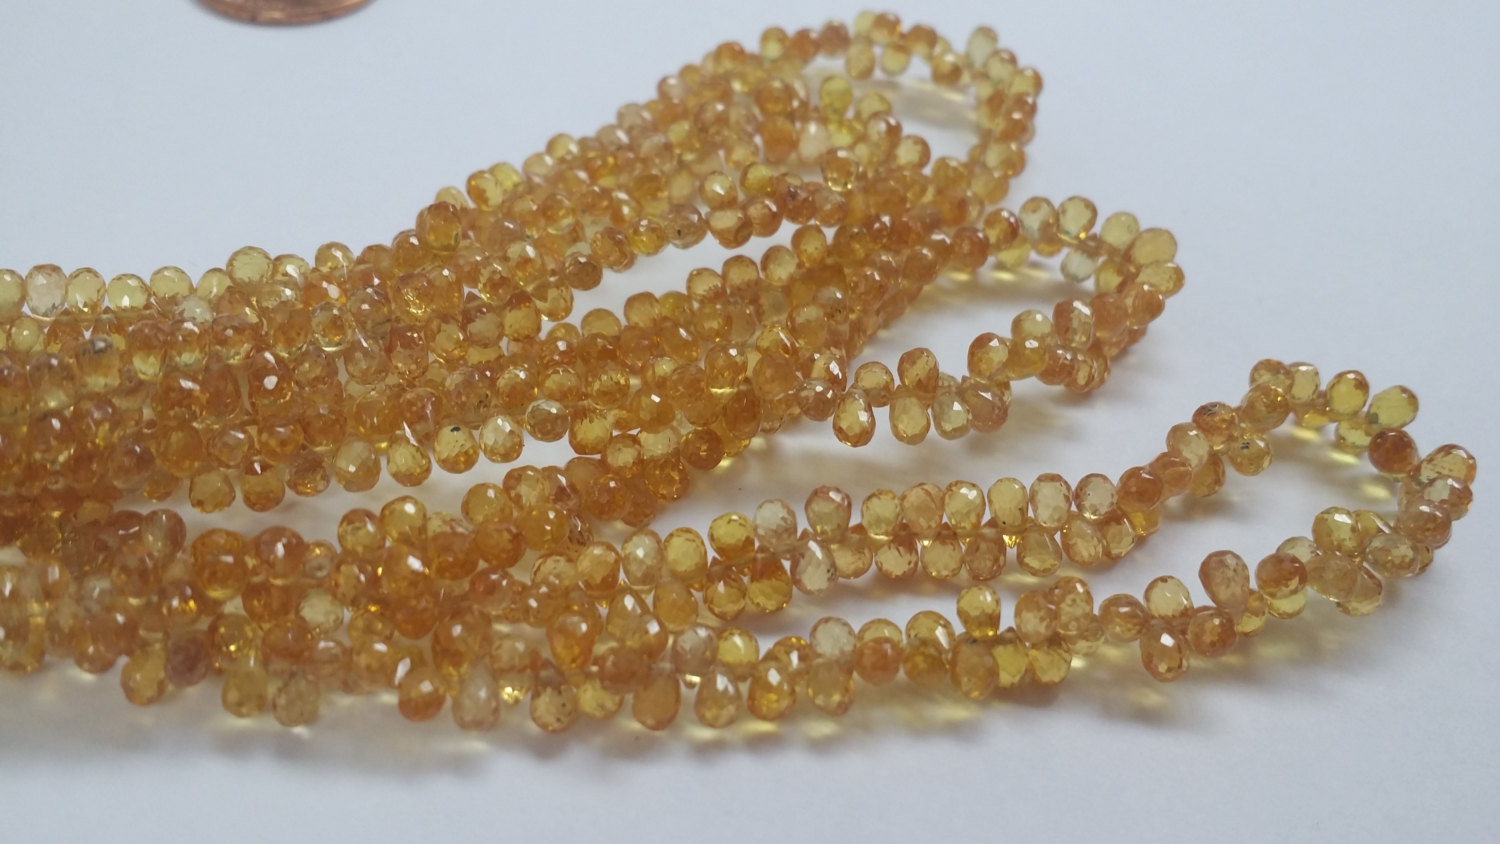 Bright Yellow Madagascar Sapphire Drops